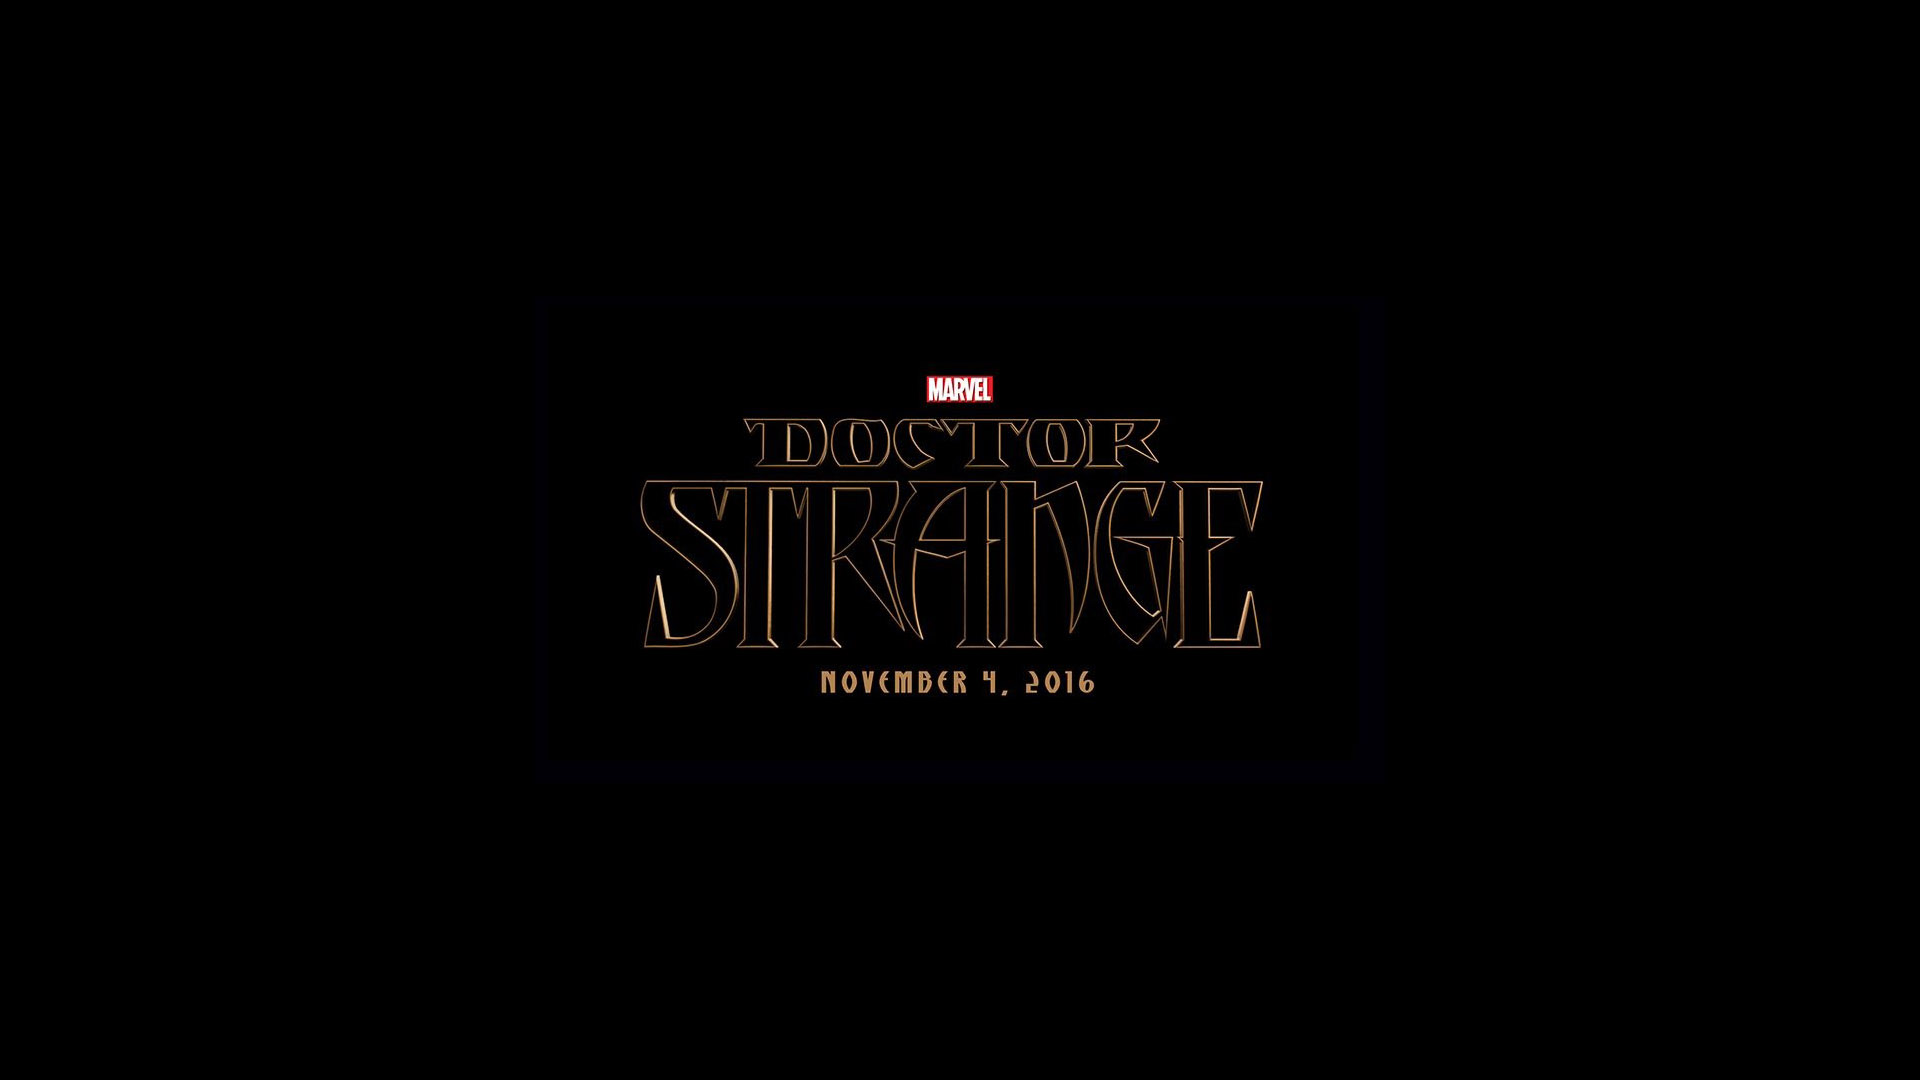 doctor strange wallpapers high resolution and quality download